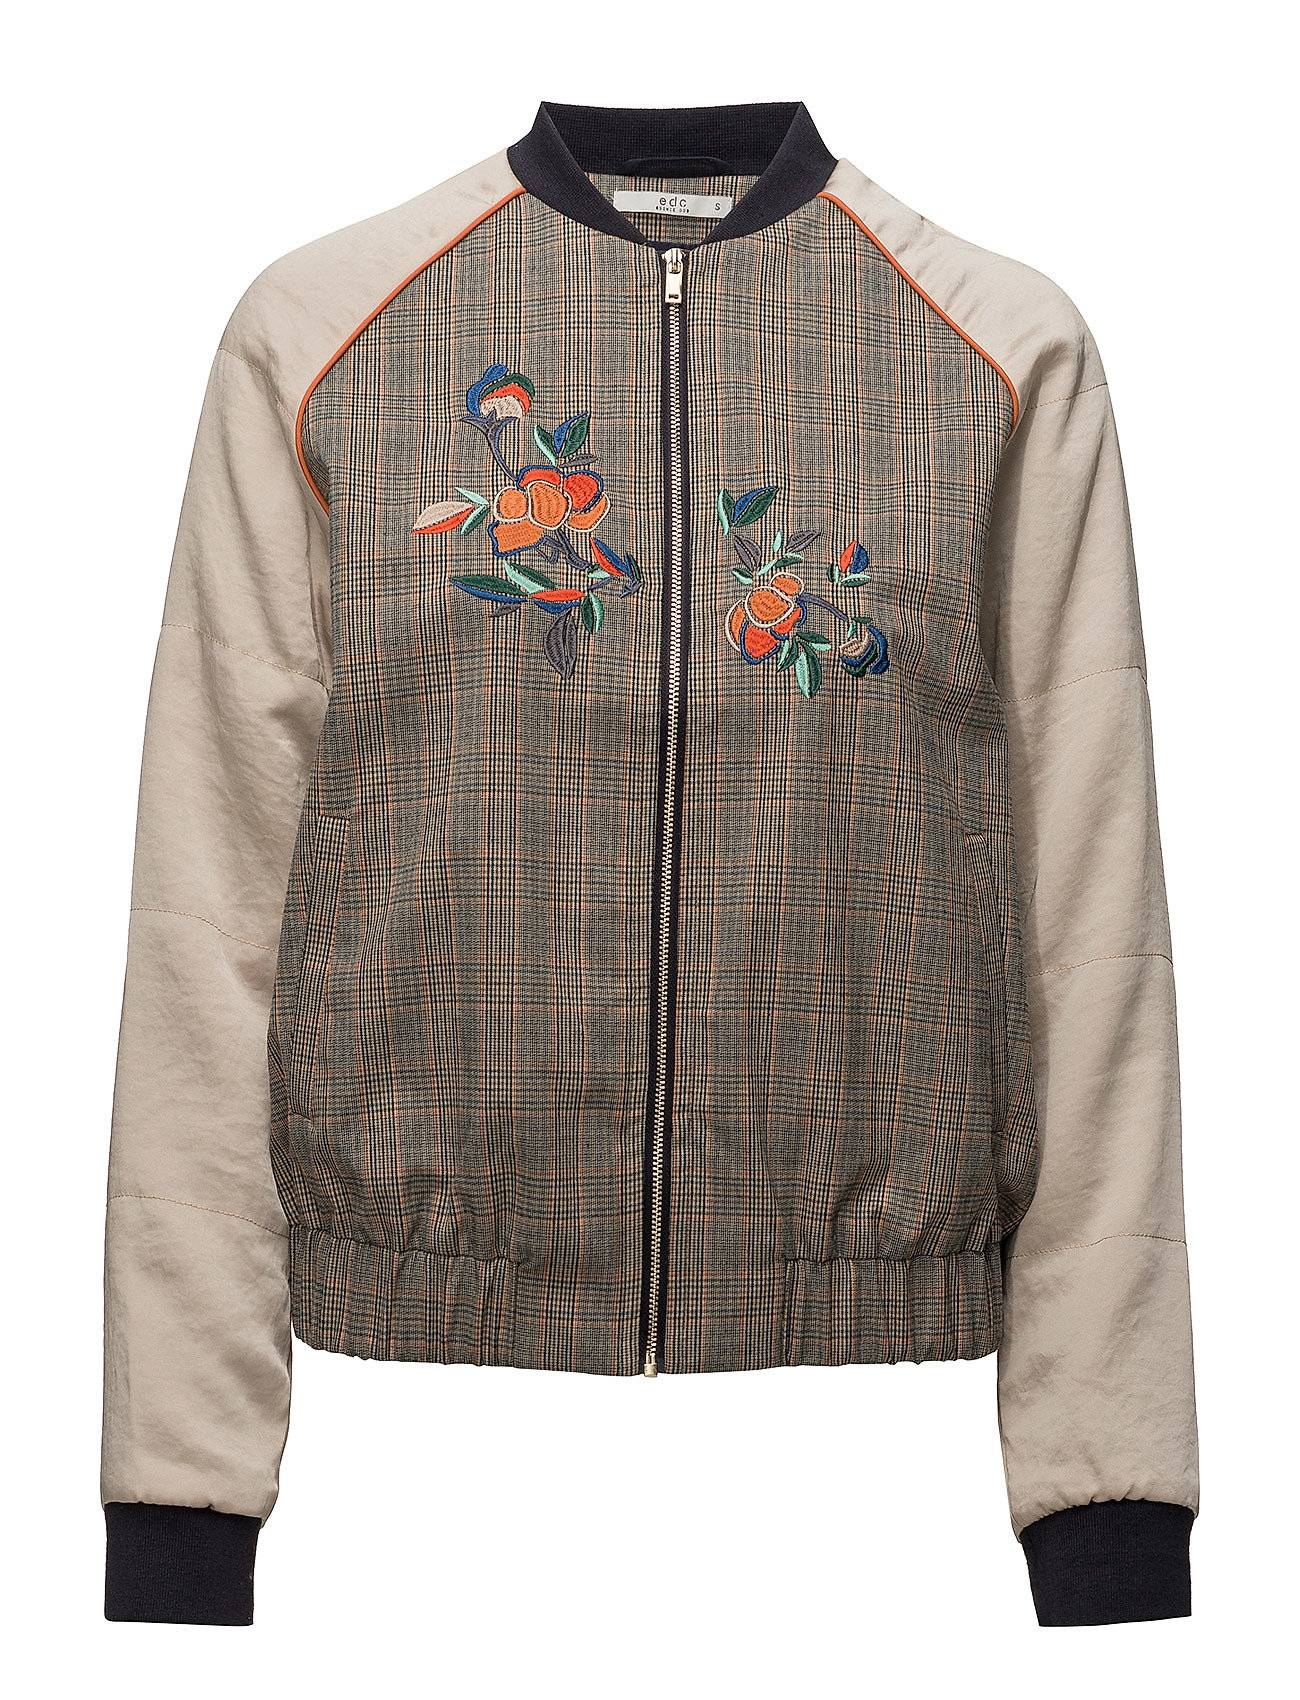 EDC by Esprit Jackets Indoor Woven